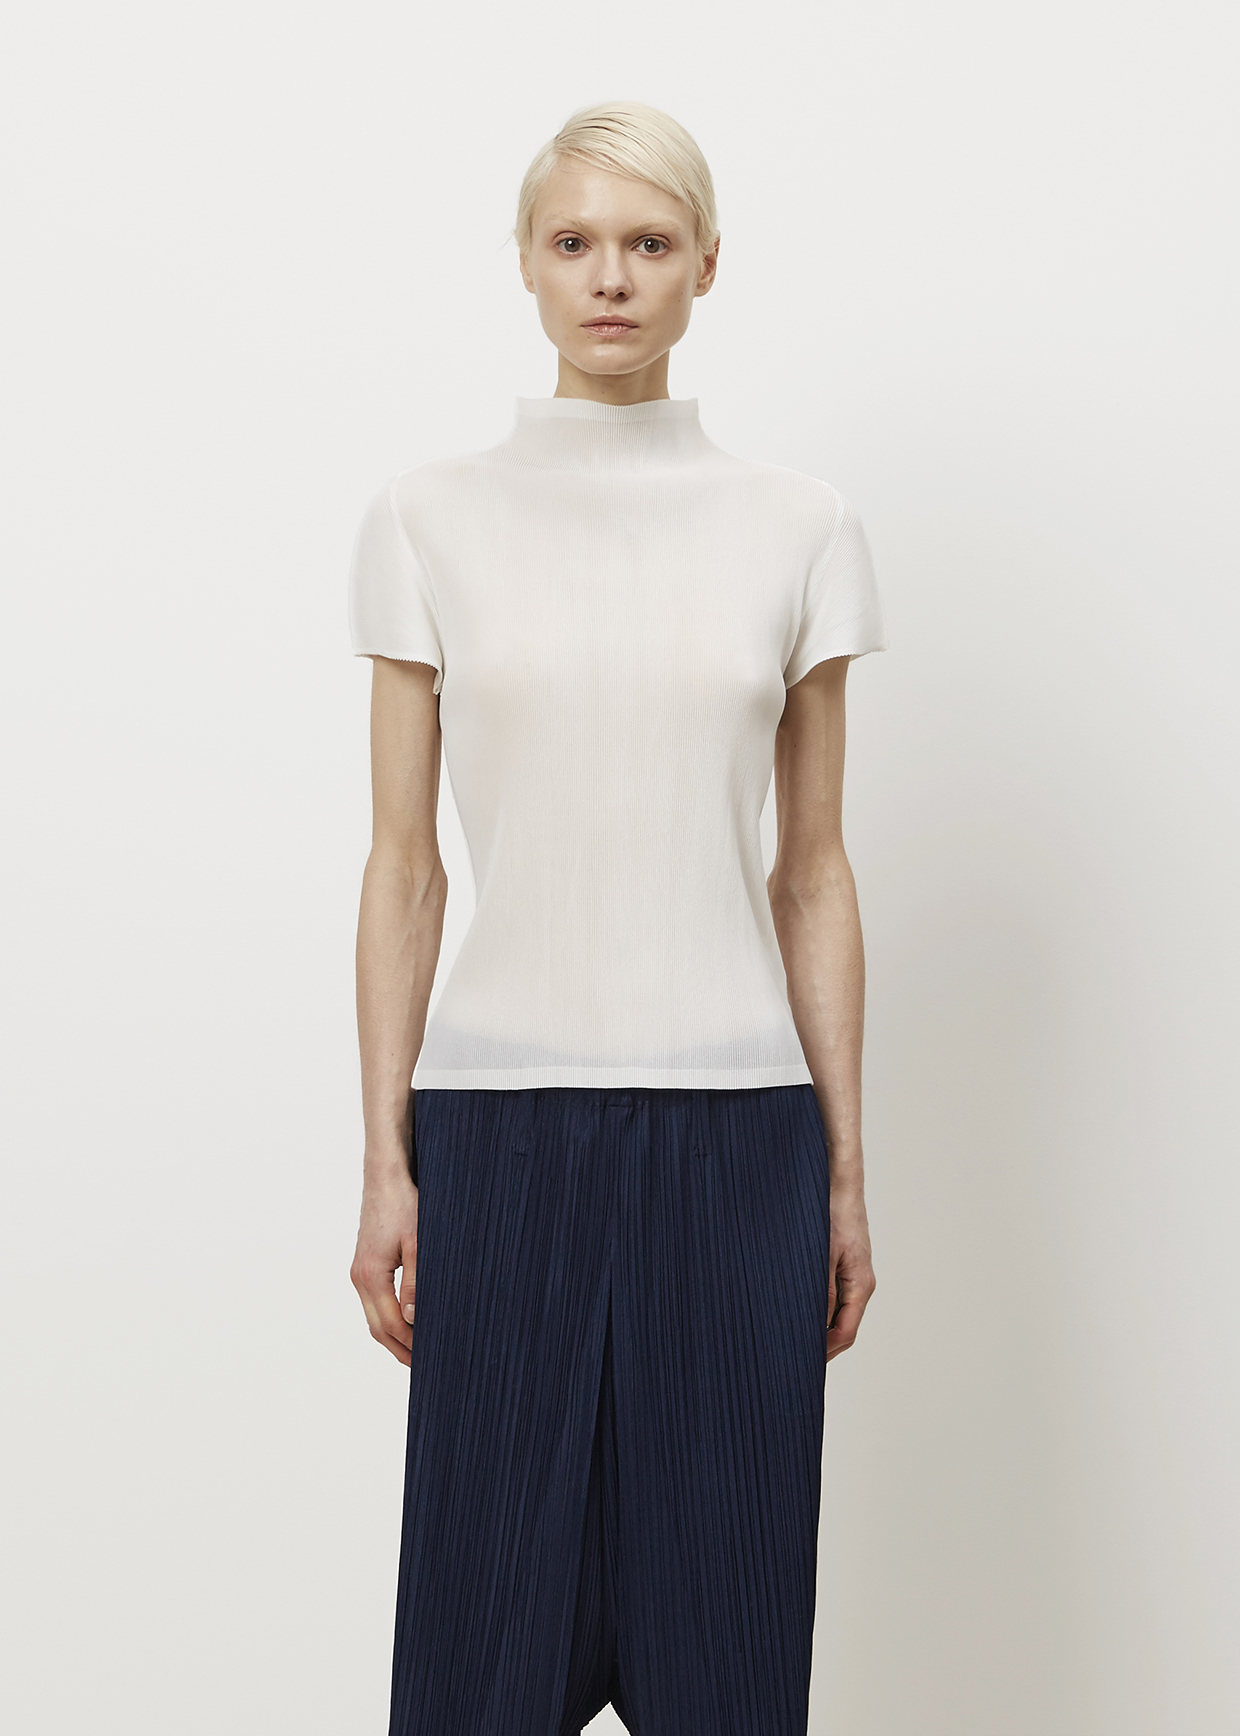 Pleats Please Issey Miyake White Mock Neck T Shirt In